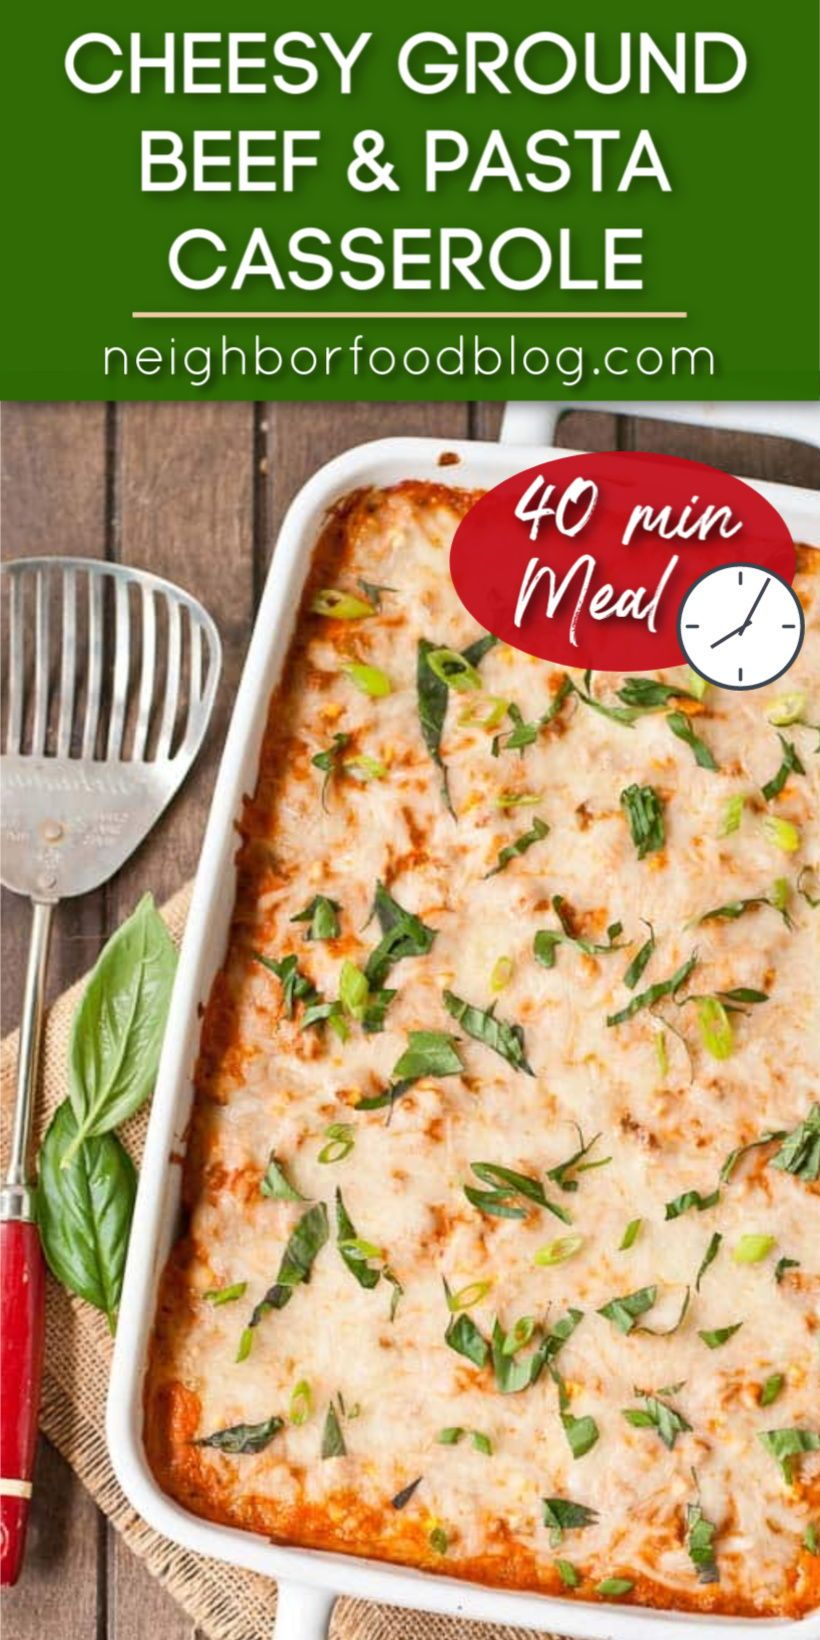 Cheesy Ground Beef And Pasta Casserole In 2020 Perfect Pasta Recipe Easy Dinner Casseroles Dinner Casseroles